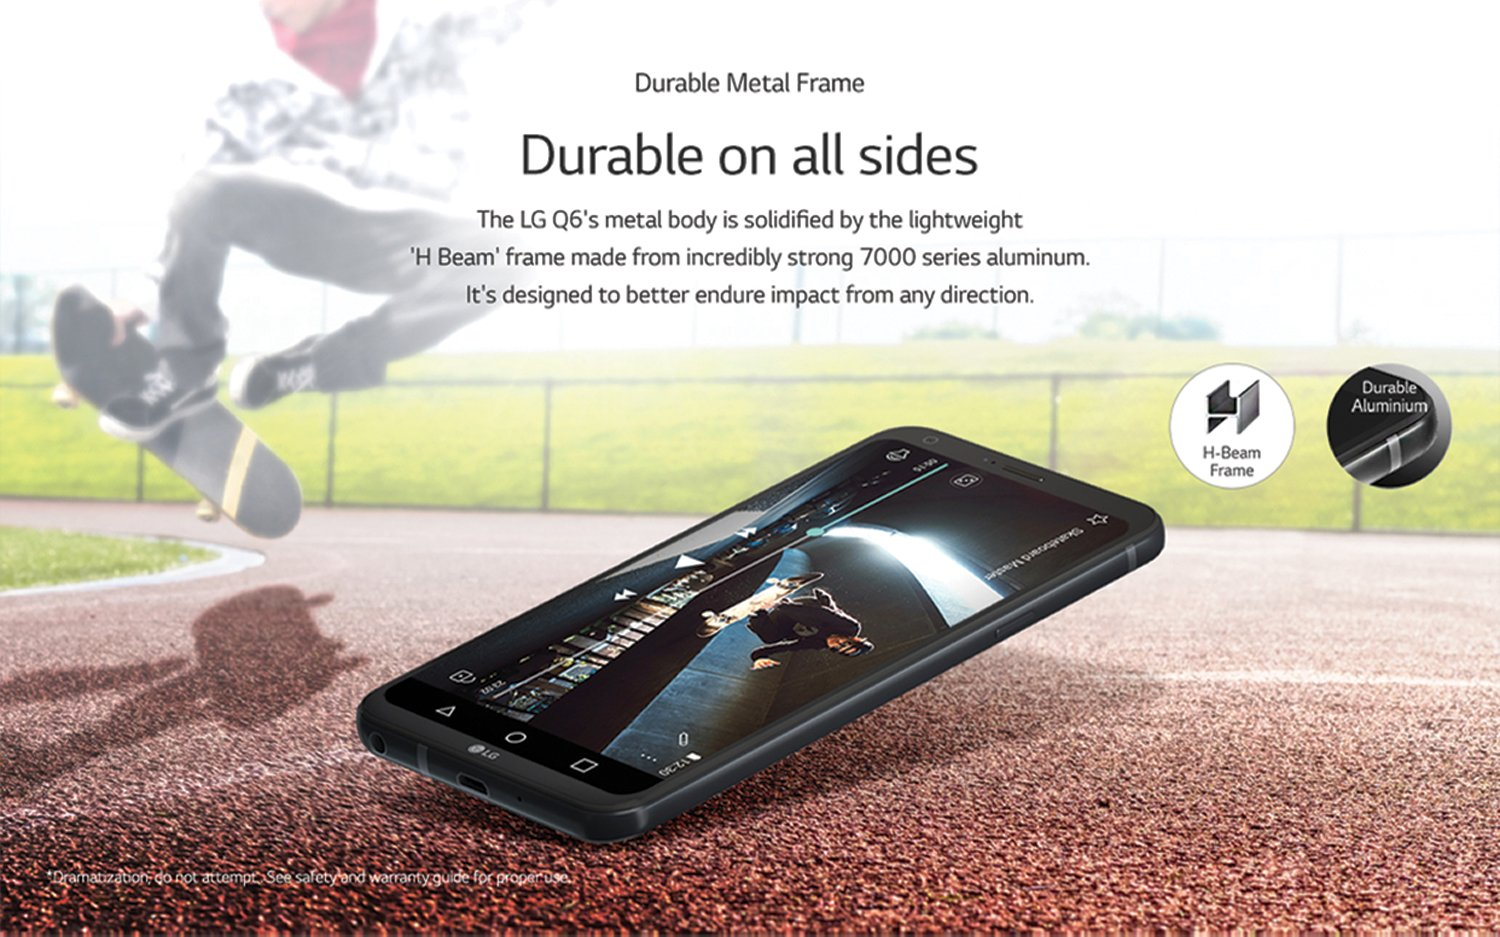 durable on all sides